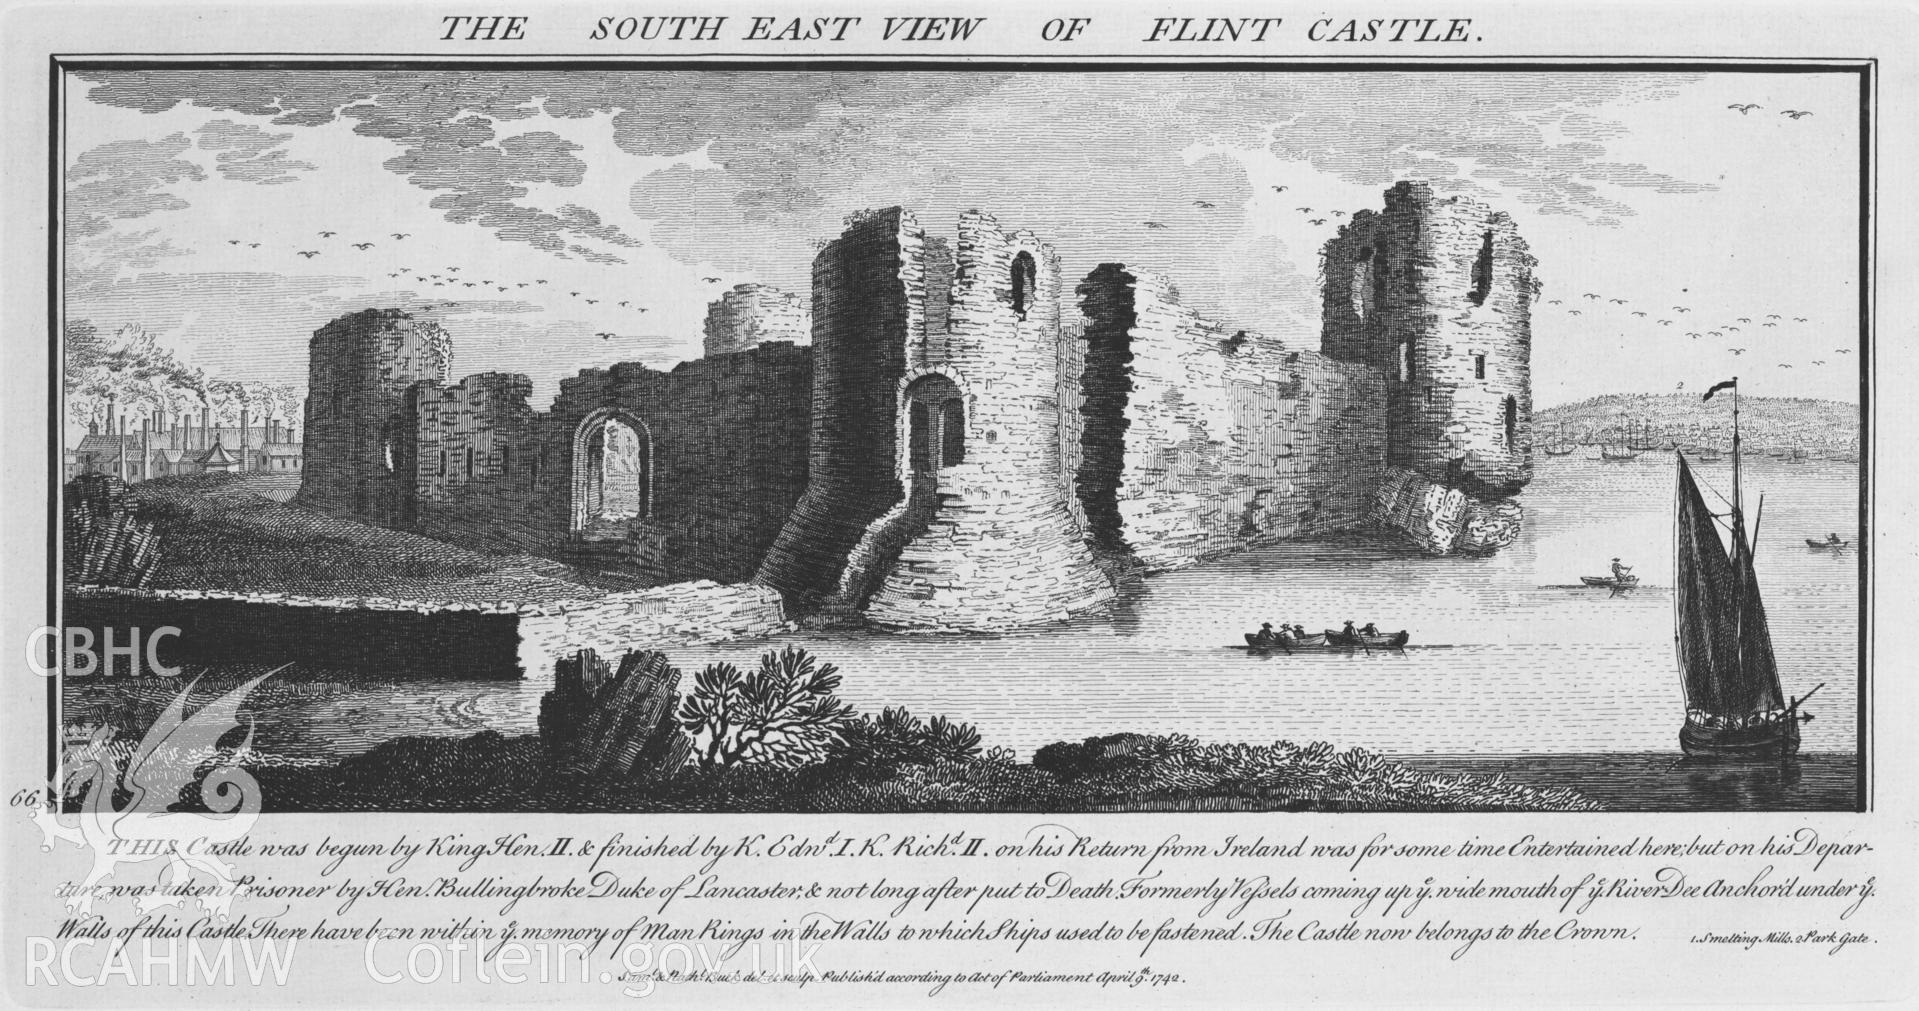 Black and white photograph relating to Flint Castle: copy of an engraving, entitled 'The South East View of Flint Castle', from Buck's Antiquities.